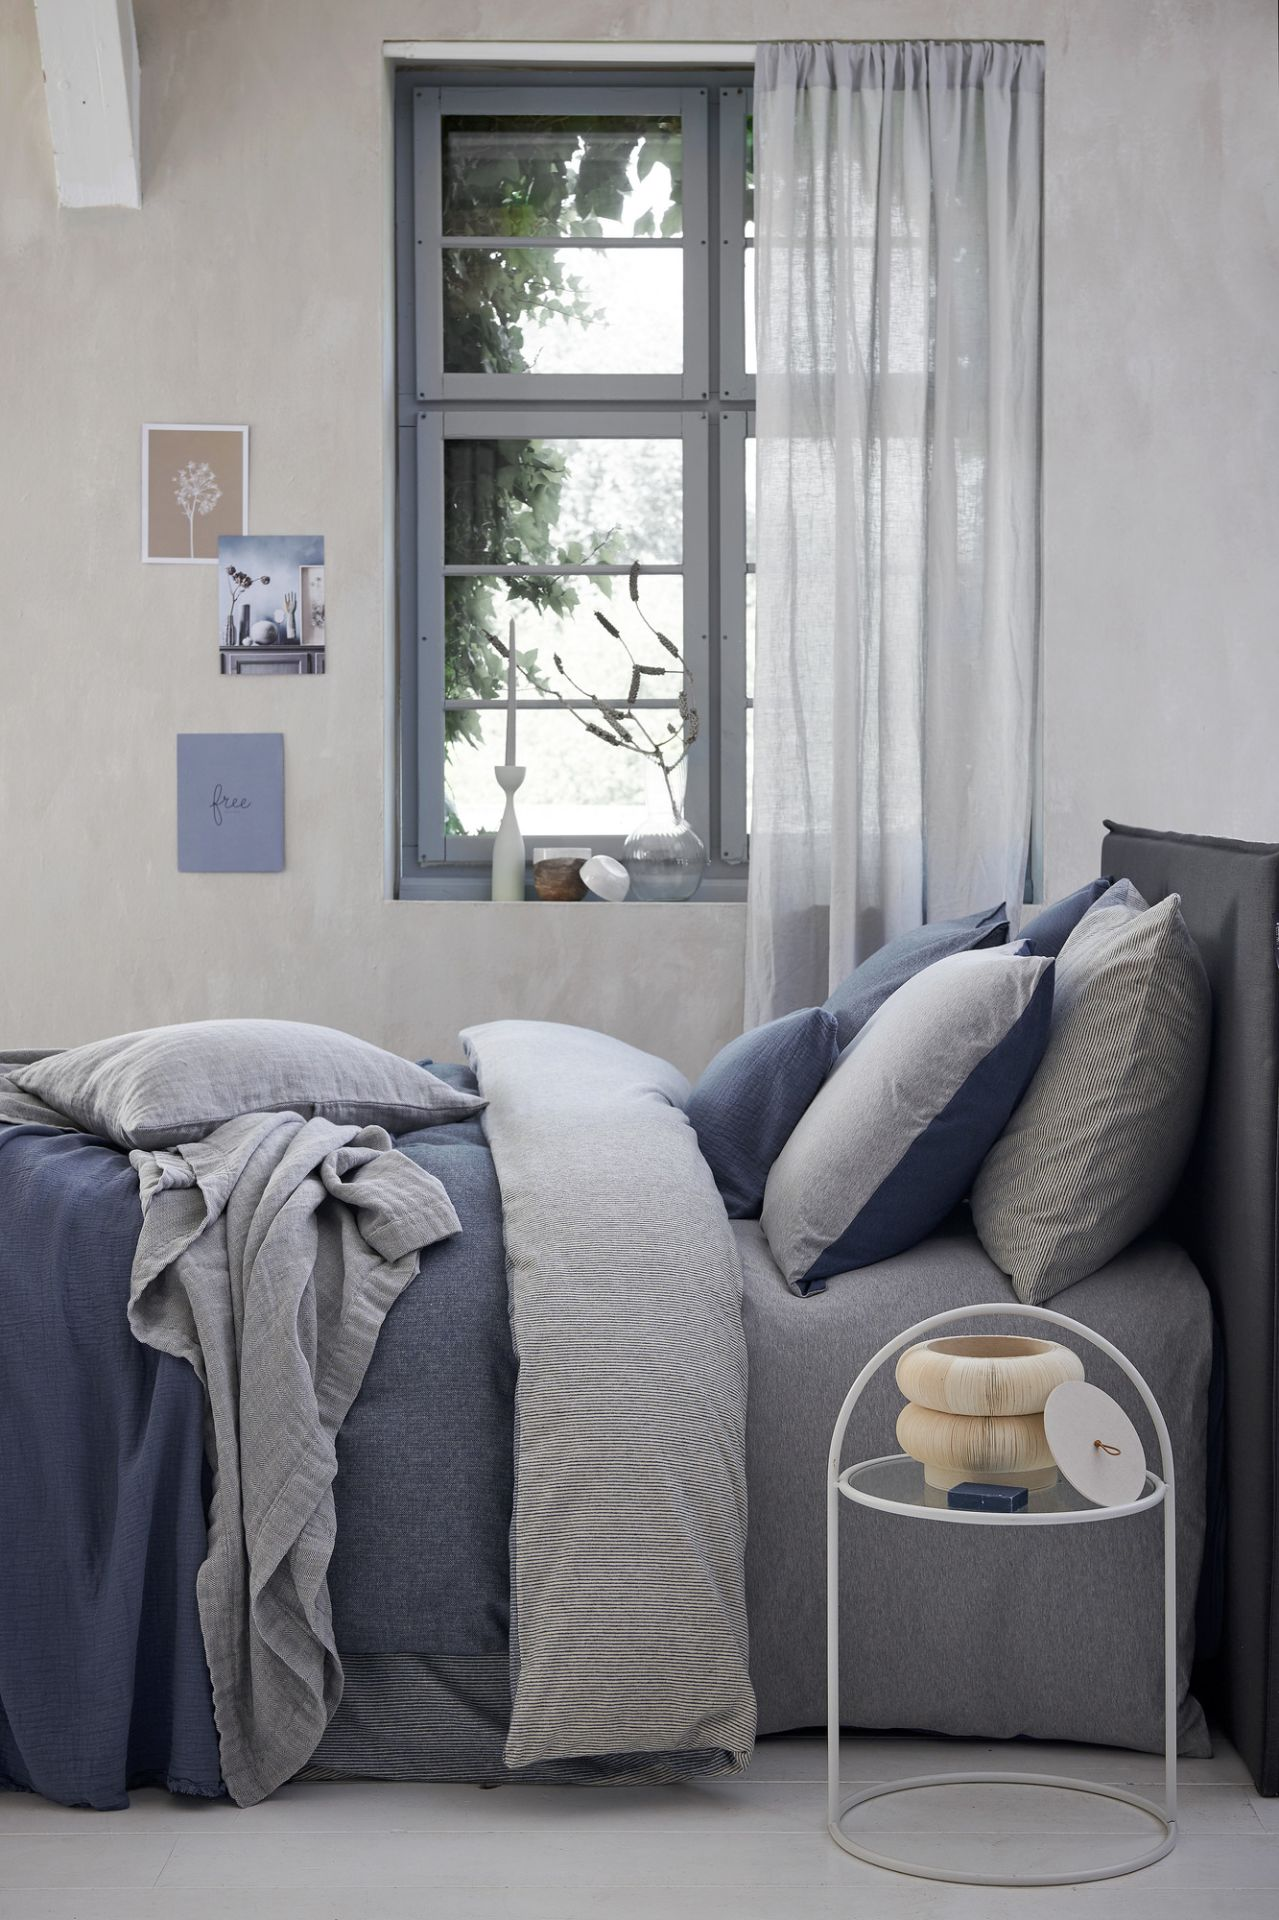 VanDyck bedtextiel Home 79, Home 80 184 Faded denim, Home 84 Multi, Pure 22 011 grey, Pure 8 184 faded denim bij Slaapkenner Zuidervaart in Heemskerk